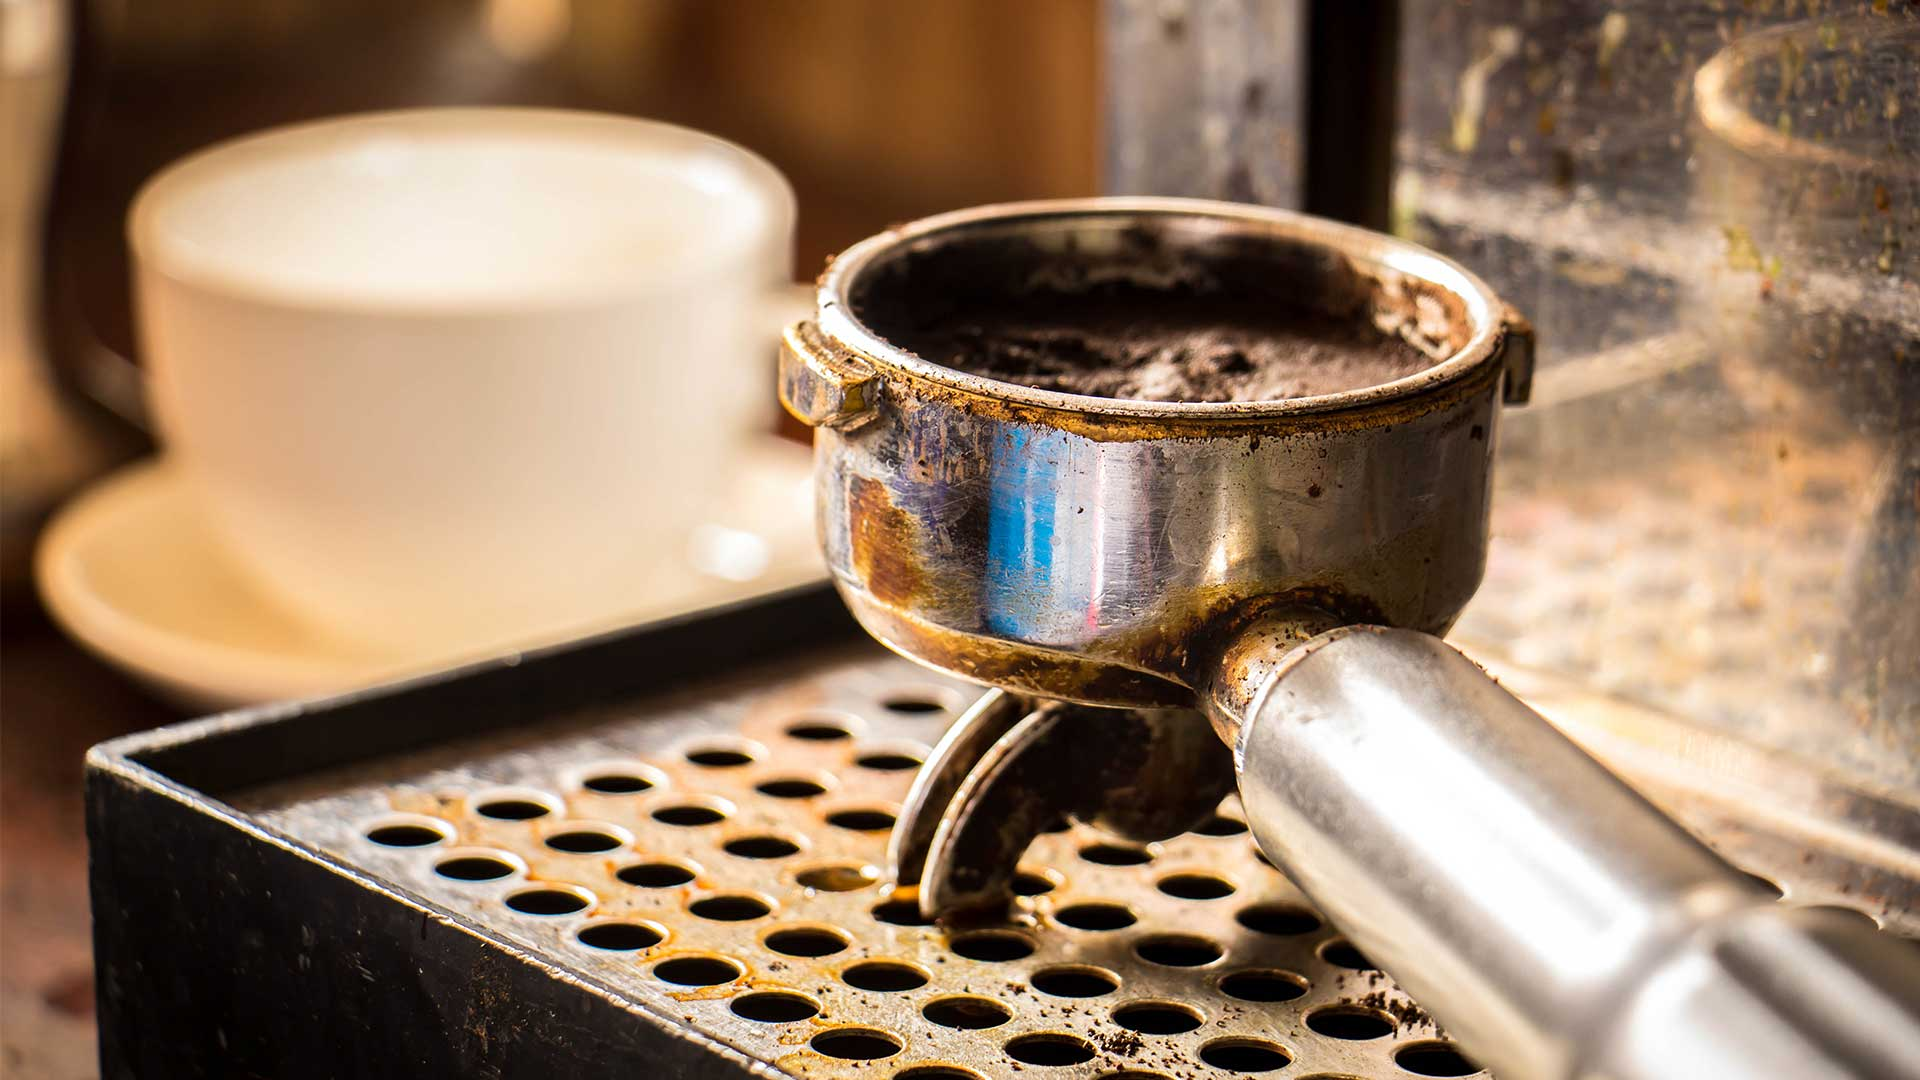 A coffee handle with the the basket full of spent grounds sits on the drop tray of an espresso machine.